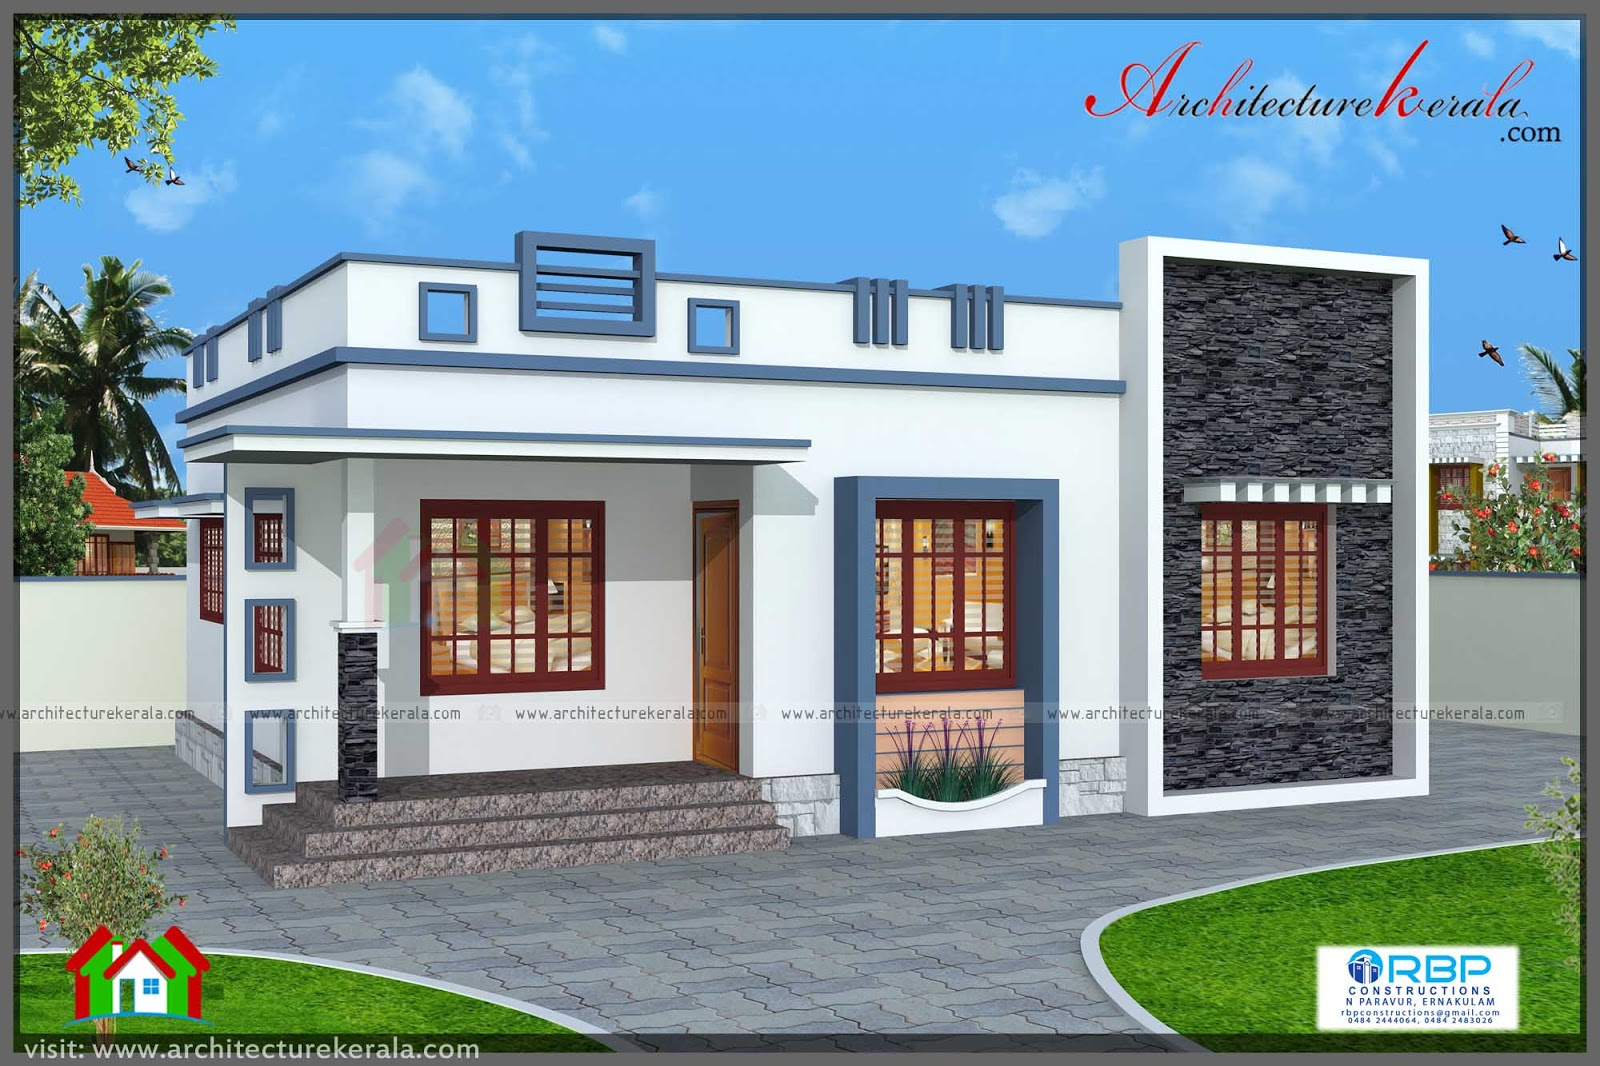 760 square feet 3 bedroom house plan architecture kerala for 3 room house